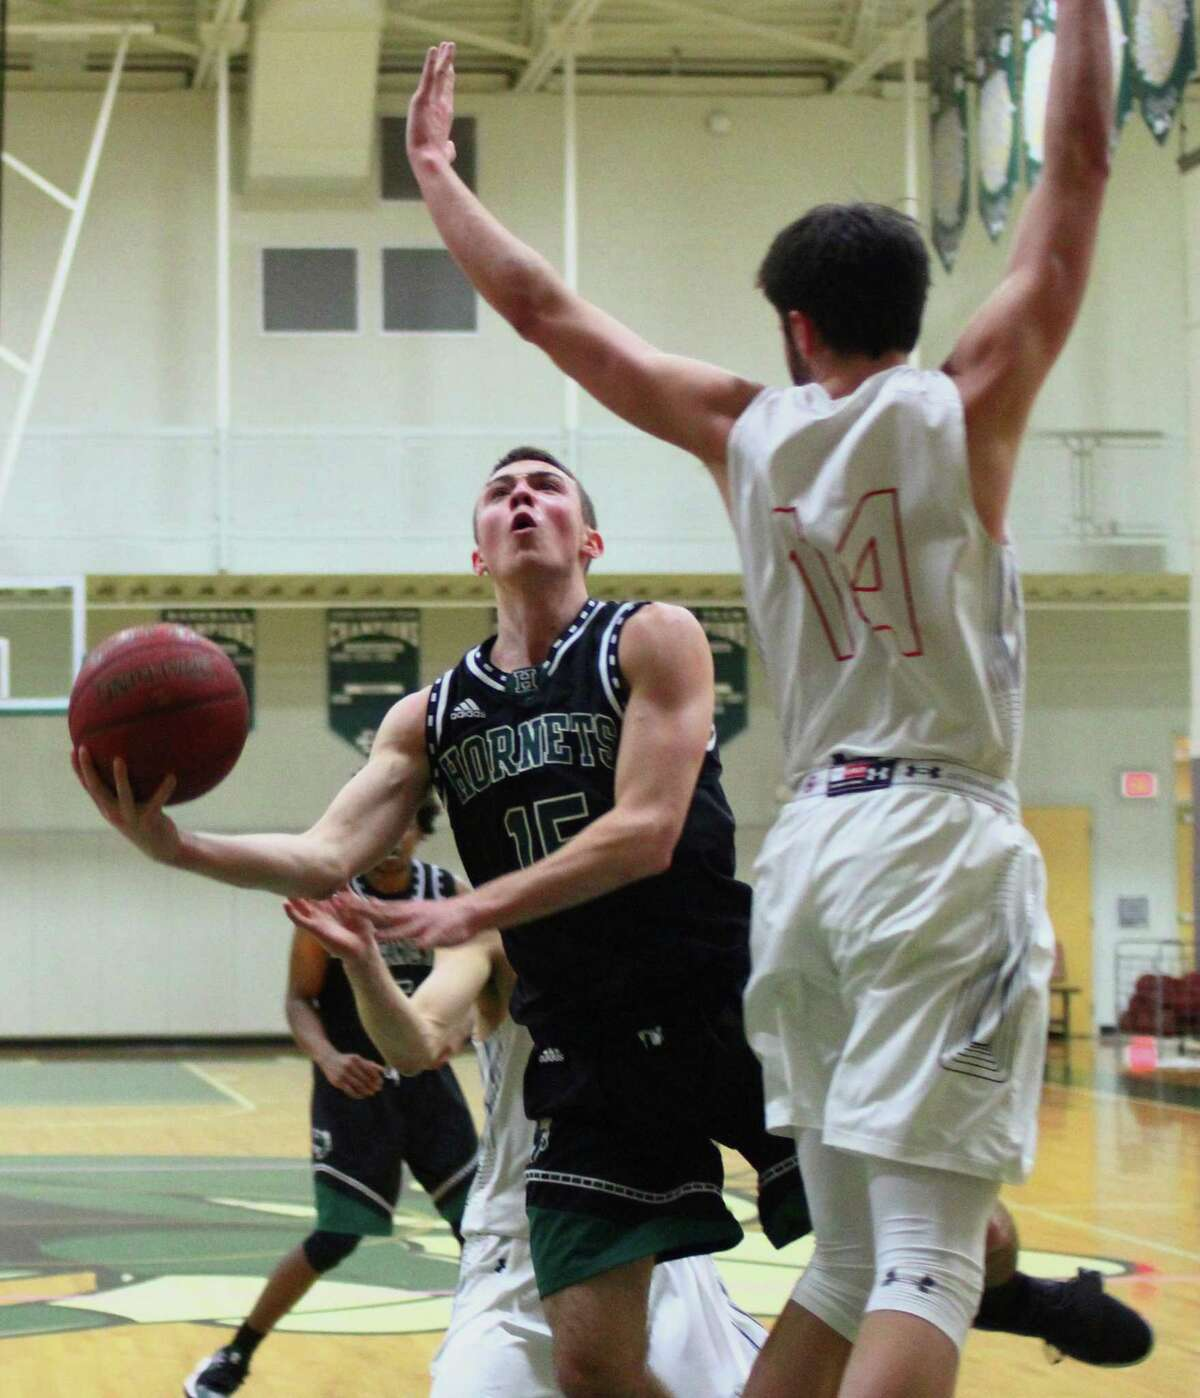 Hamden Hall's Jackson Benigni (15) lays up the ball as Greens Farms Academy's Greg Lawrence (14) defends during basketball action in Hamden, Conn., on Wednesday Feb. 13, 2019.